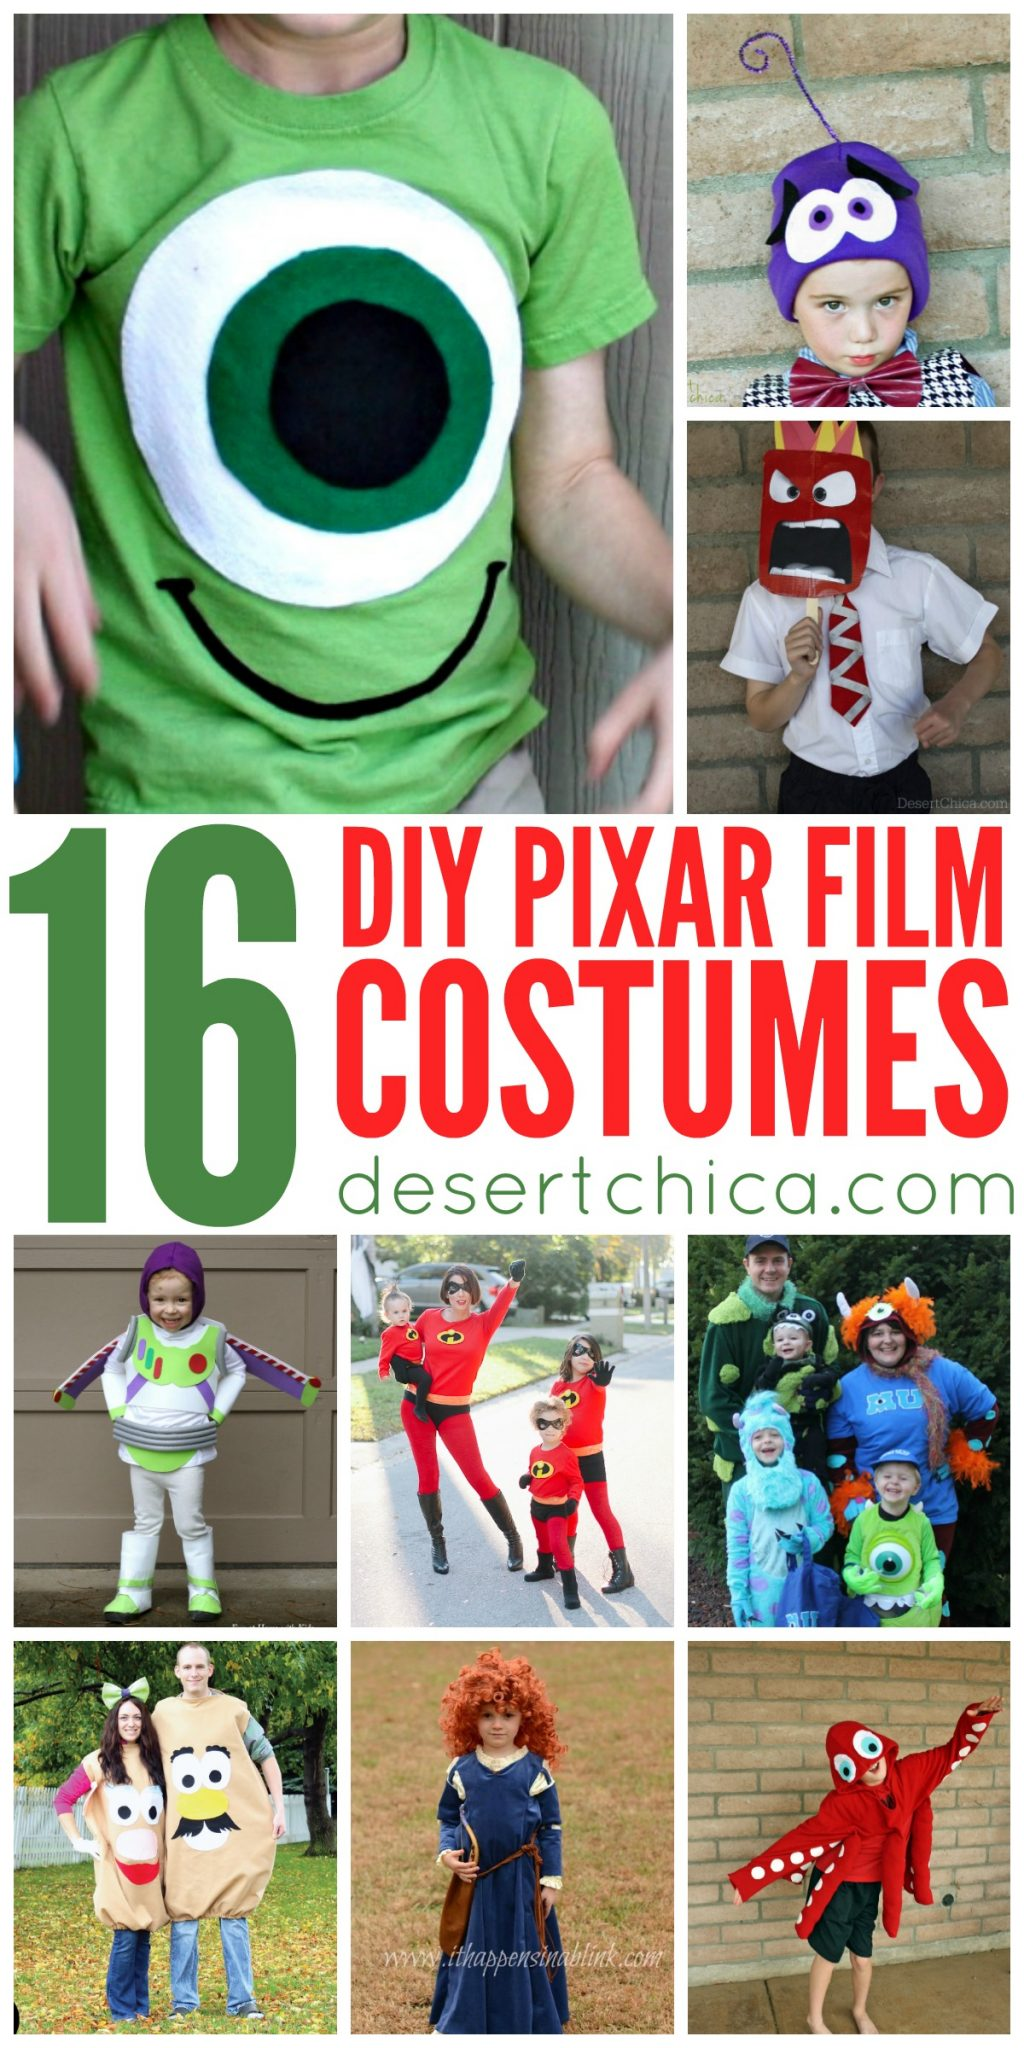 pixar-costumes-withtext